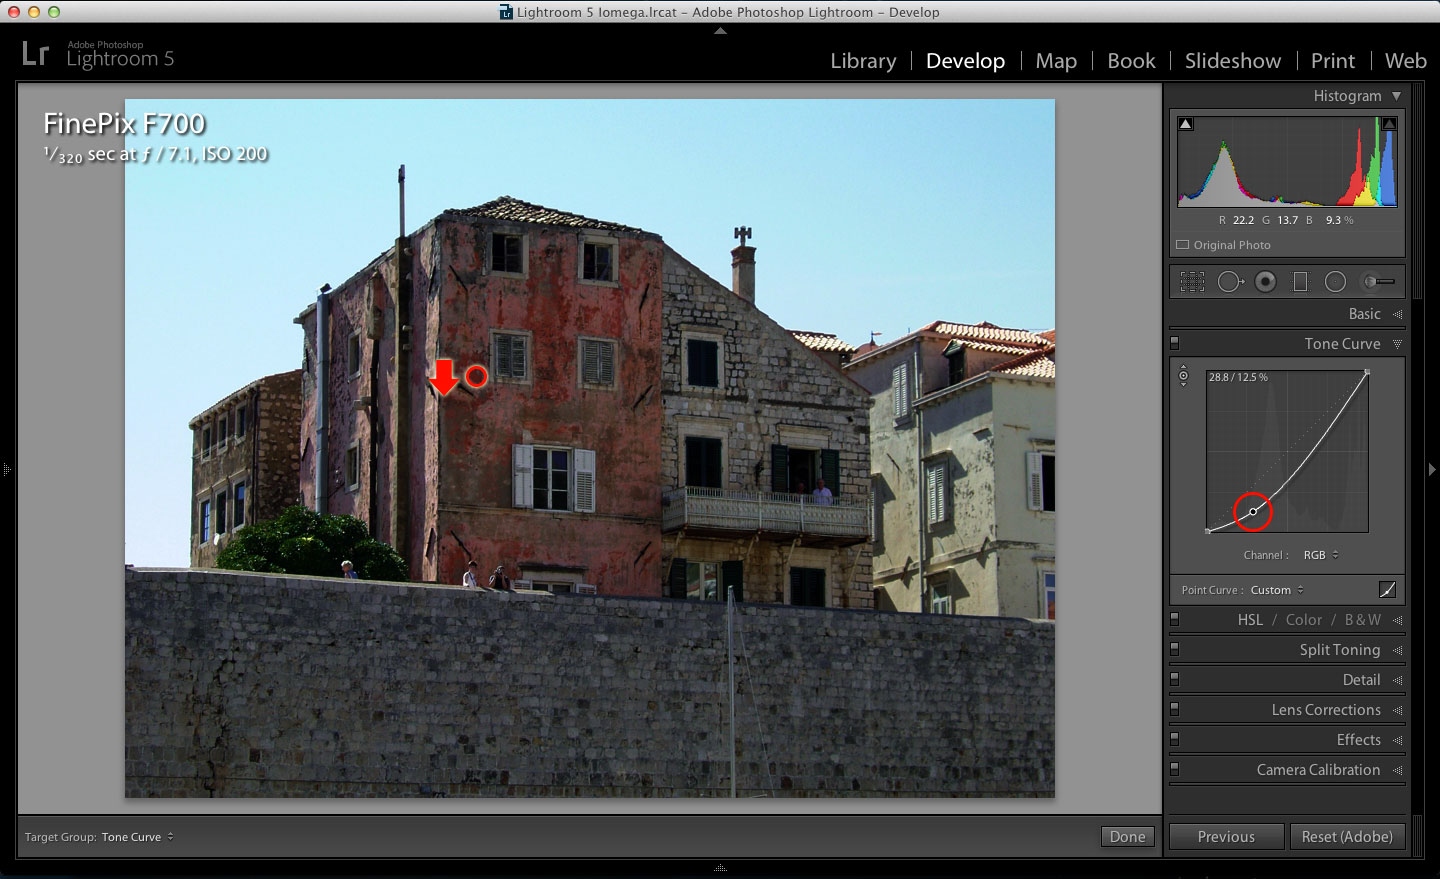 Adjusting the point curve in Lightroom